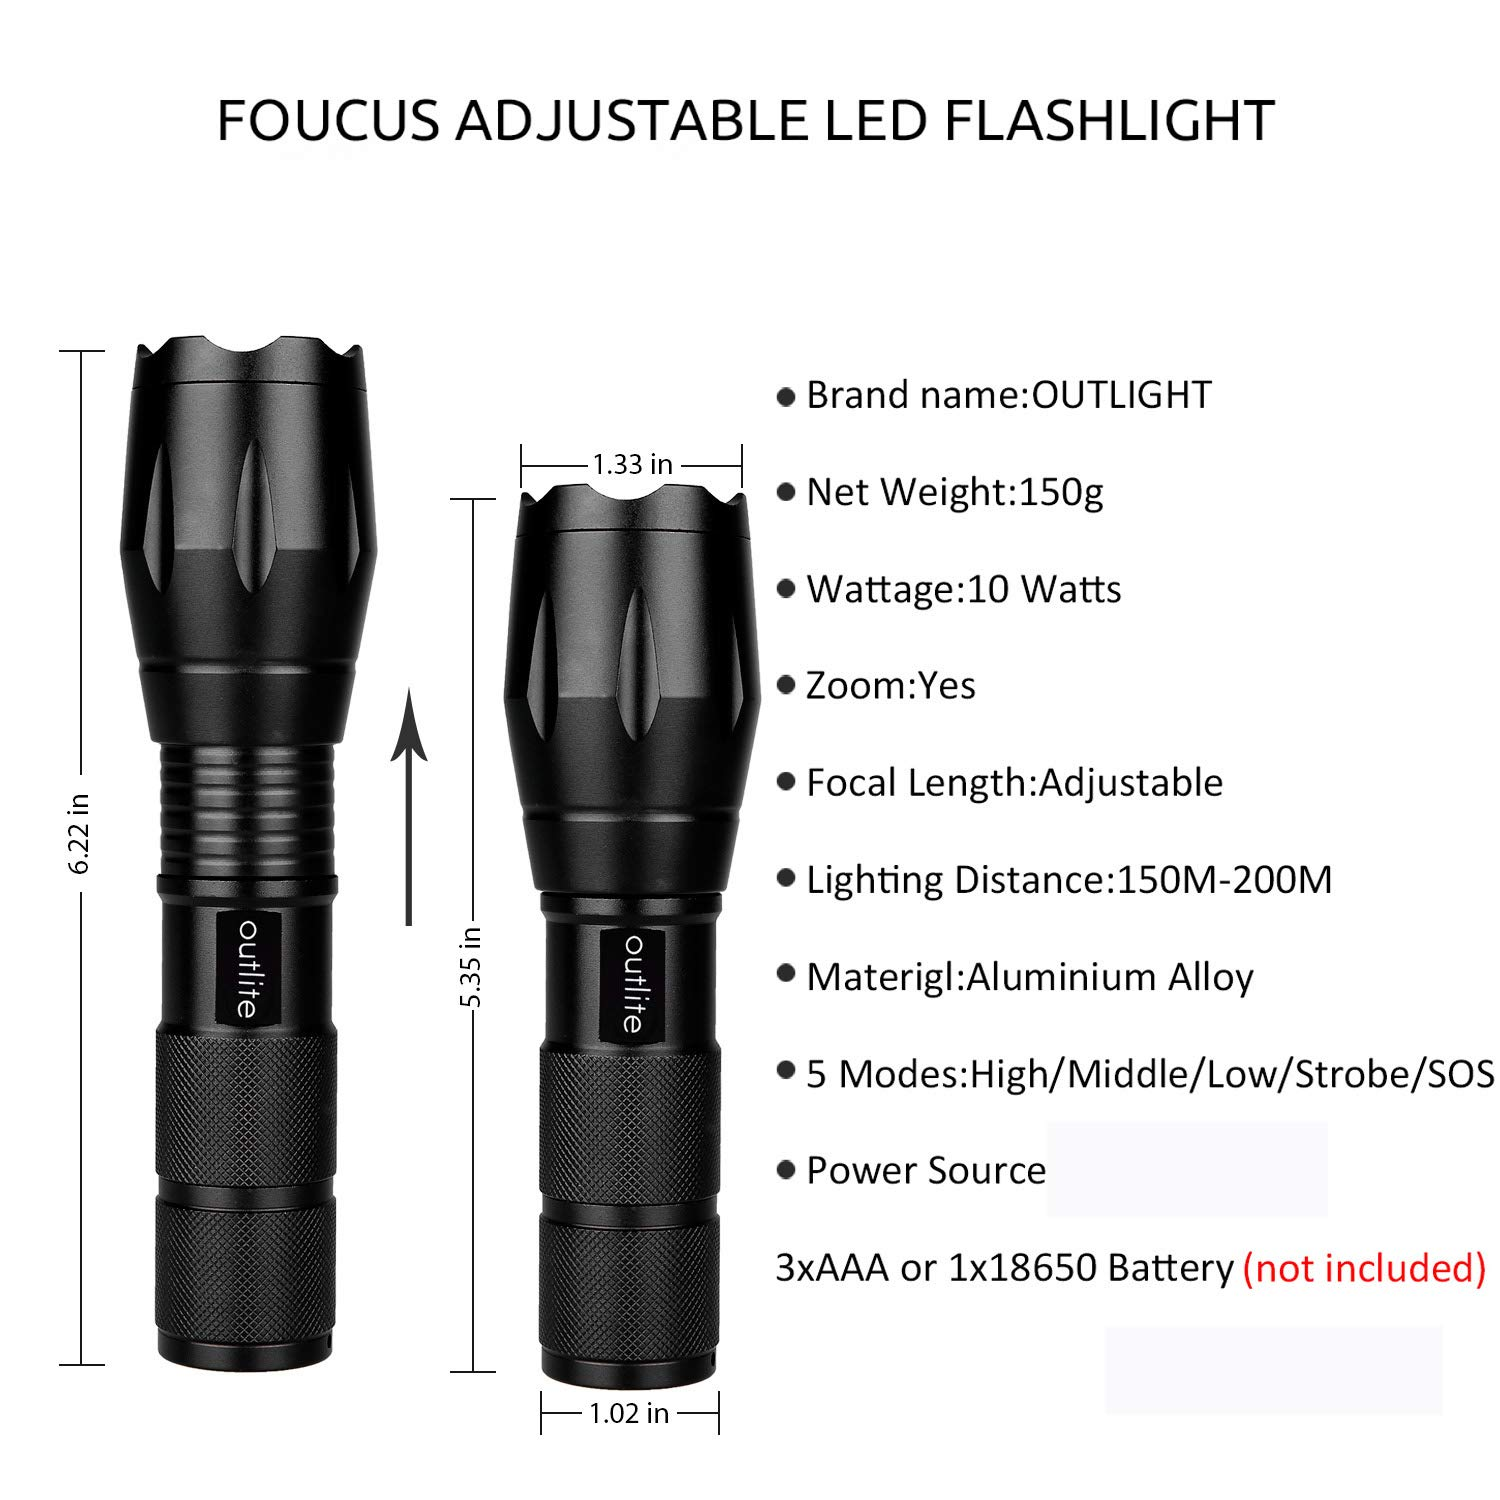 Outlite A100 Portable Ultra Bright Handheld LED Flashlight with Adjustable Focus and 5 Light Modes, Outdoor Water Resistant Torch, Powered Tactical Flashlight for Camping Hiking etc by outlite (Image #3)